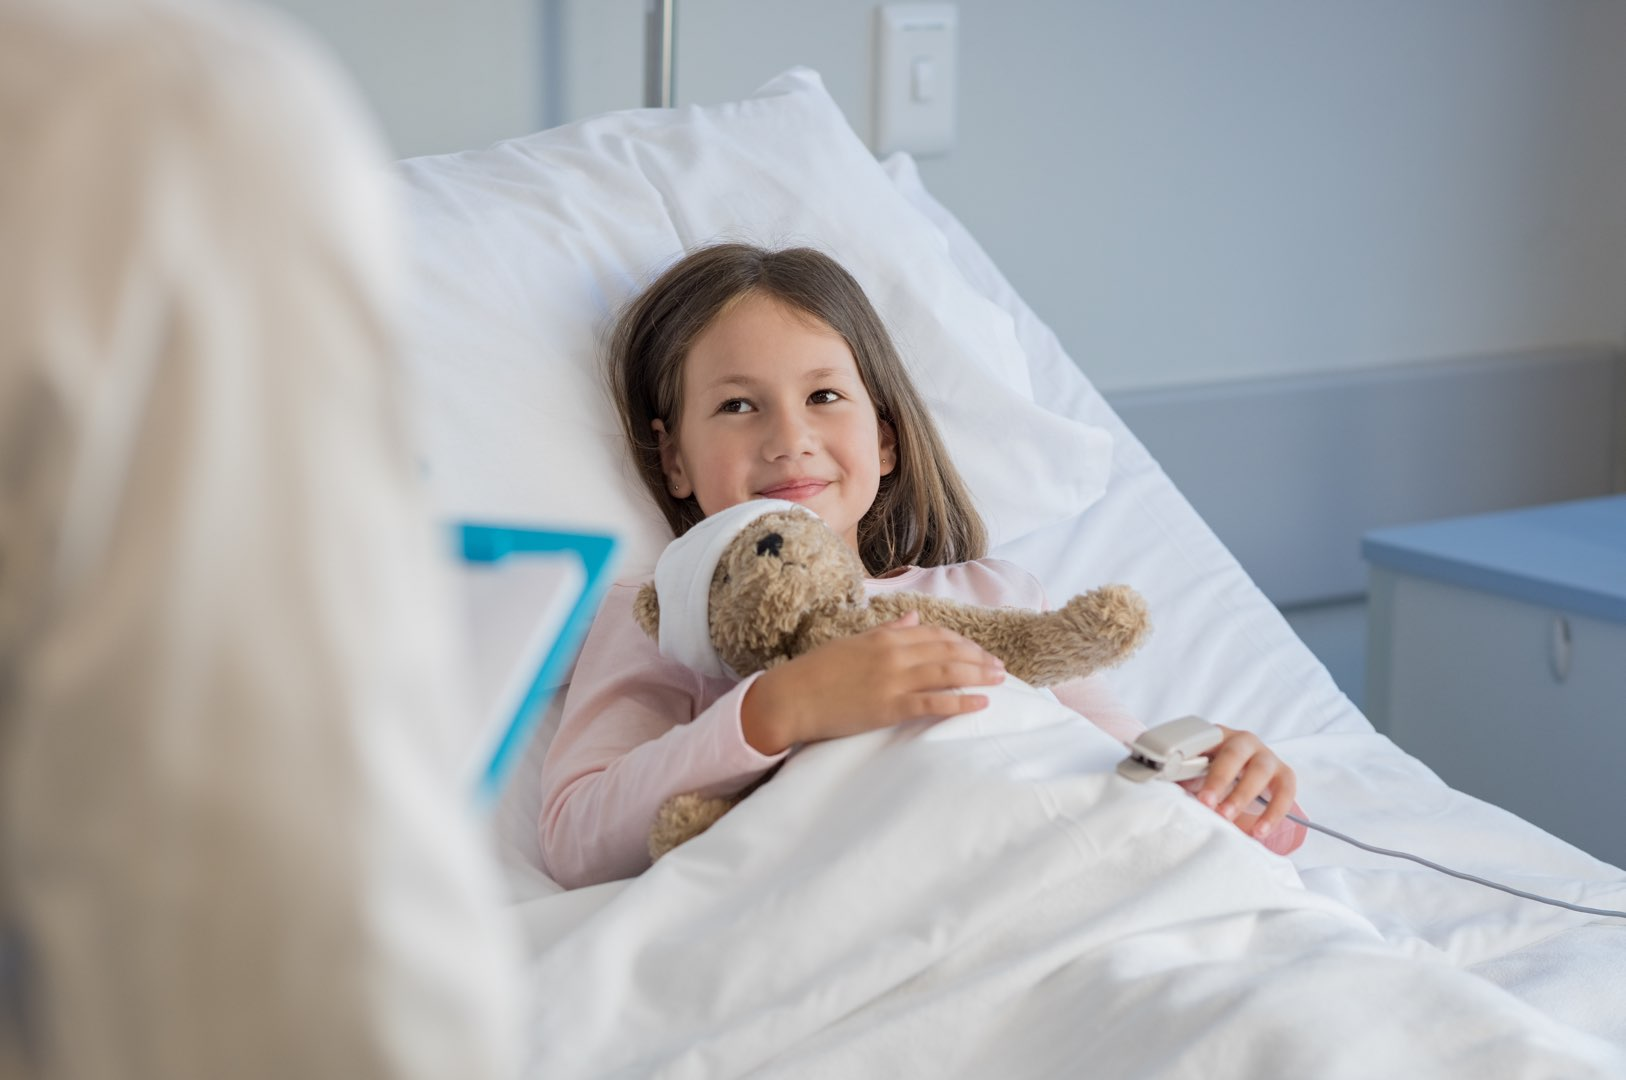 A little girl recovers in a hospital bed while holding her teddy bear, which had a bandage on its head.